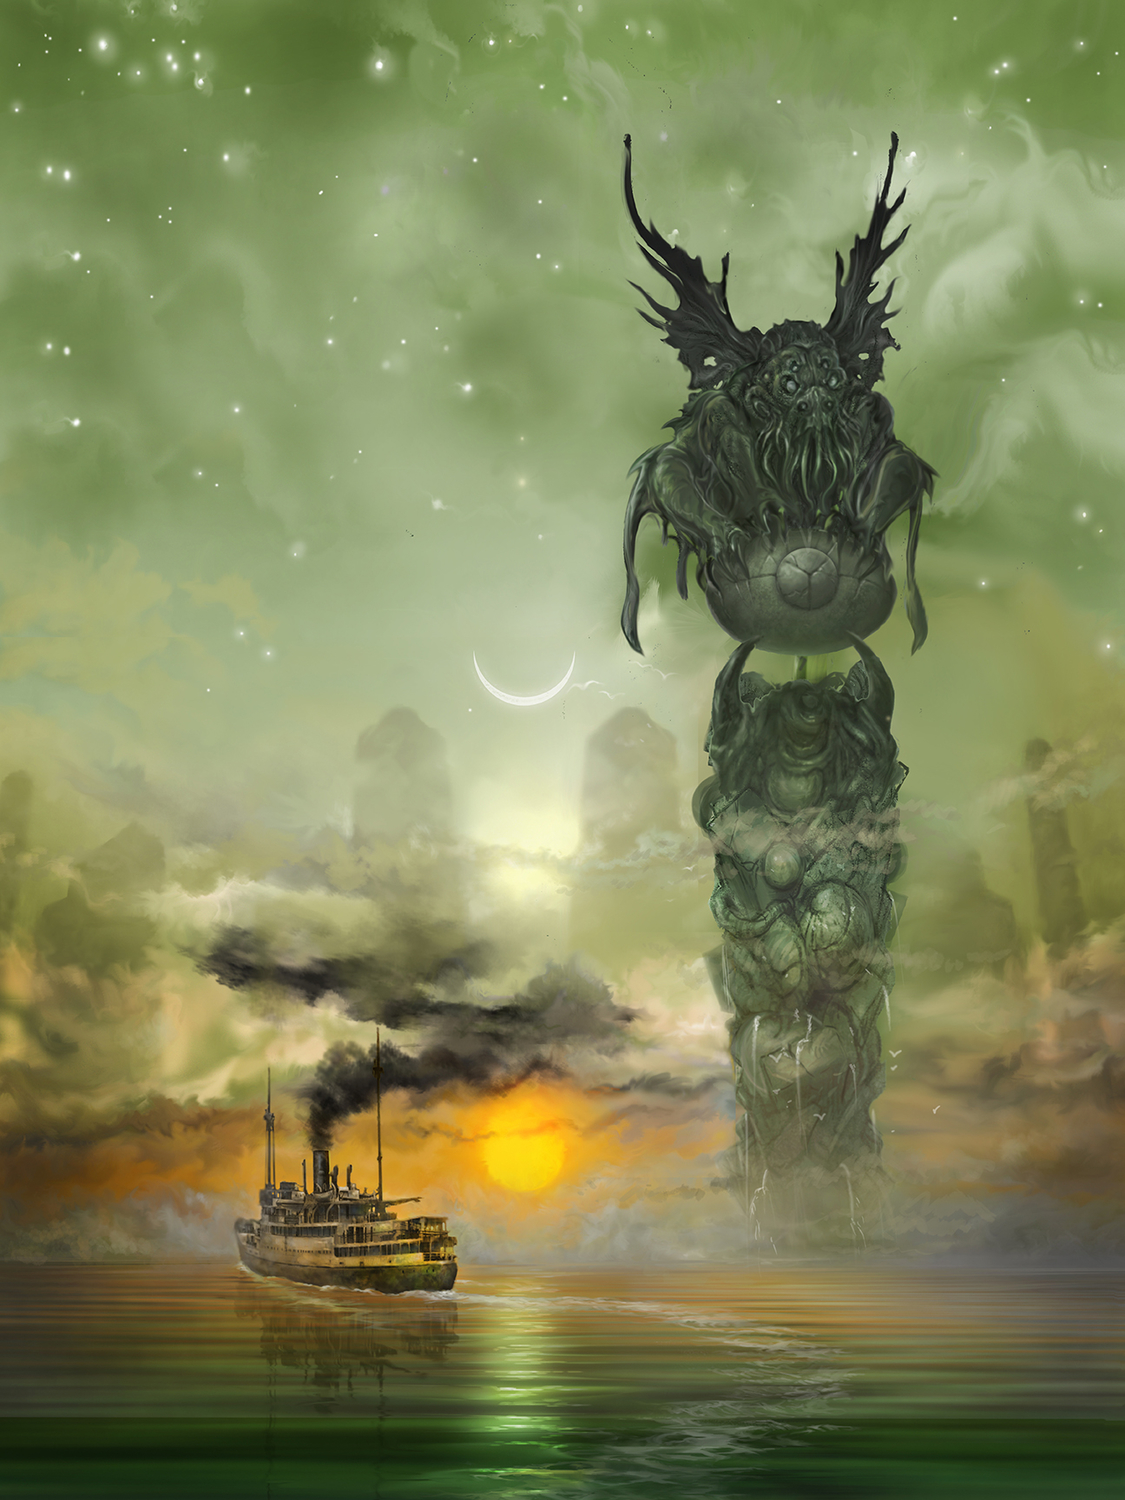 The Call of Cthulhu Artwork by Thomas Miller